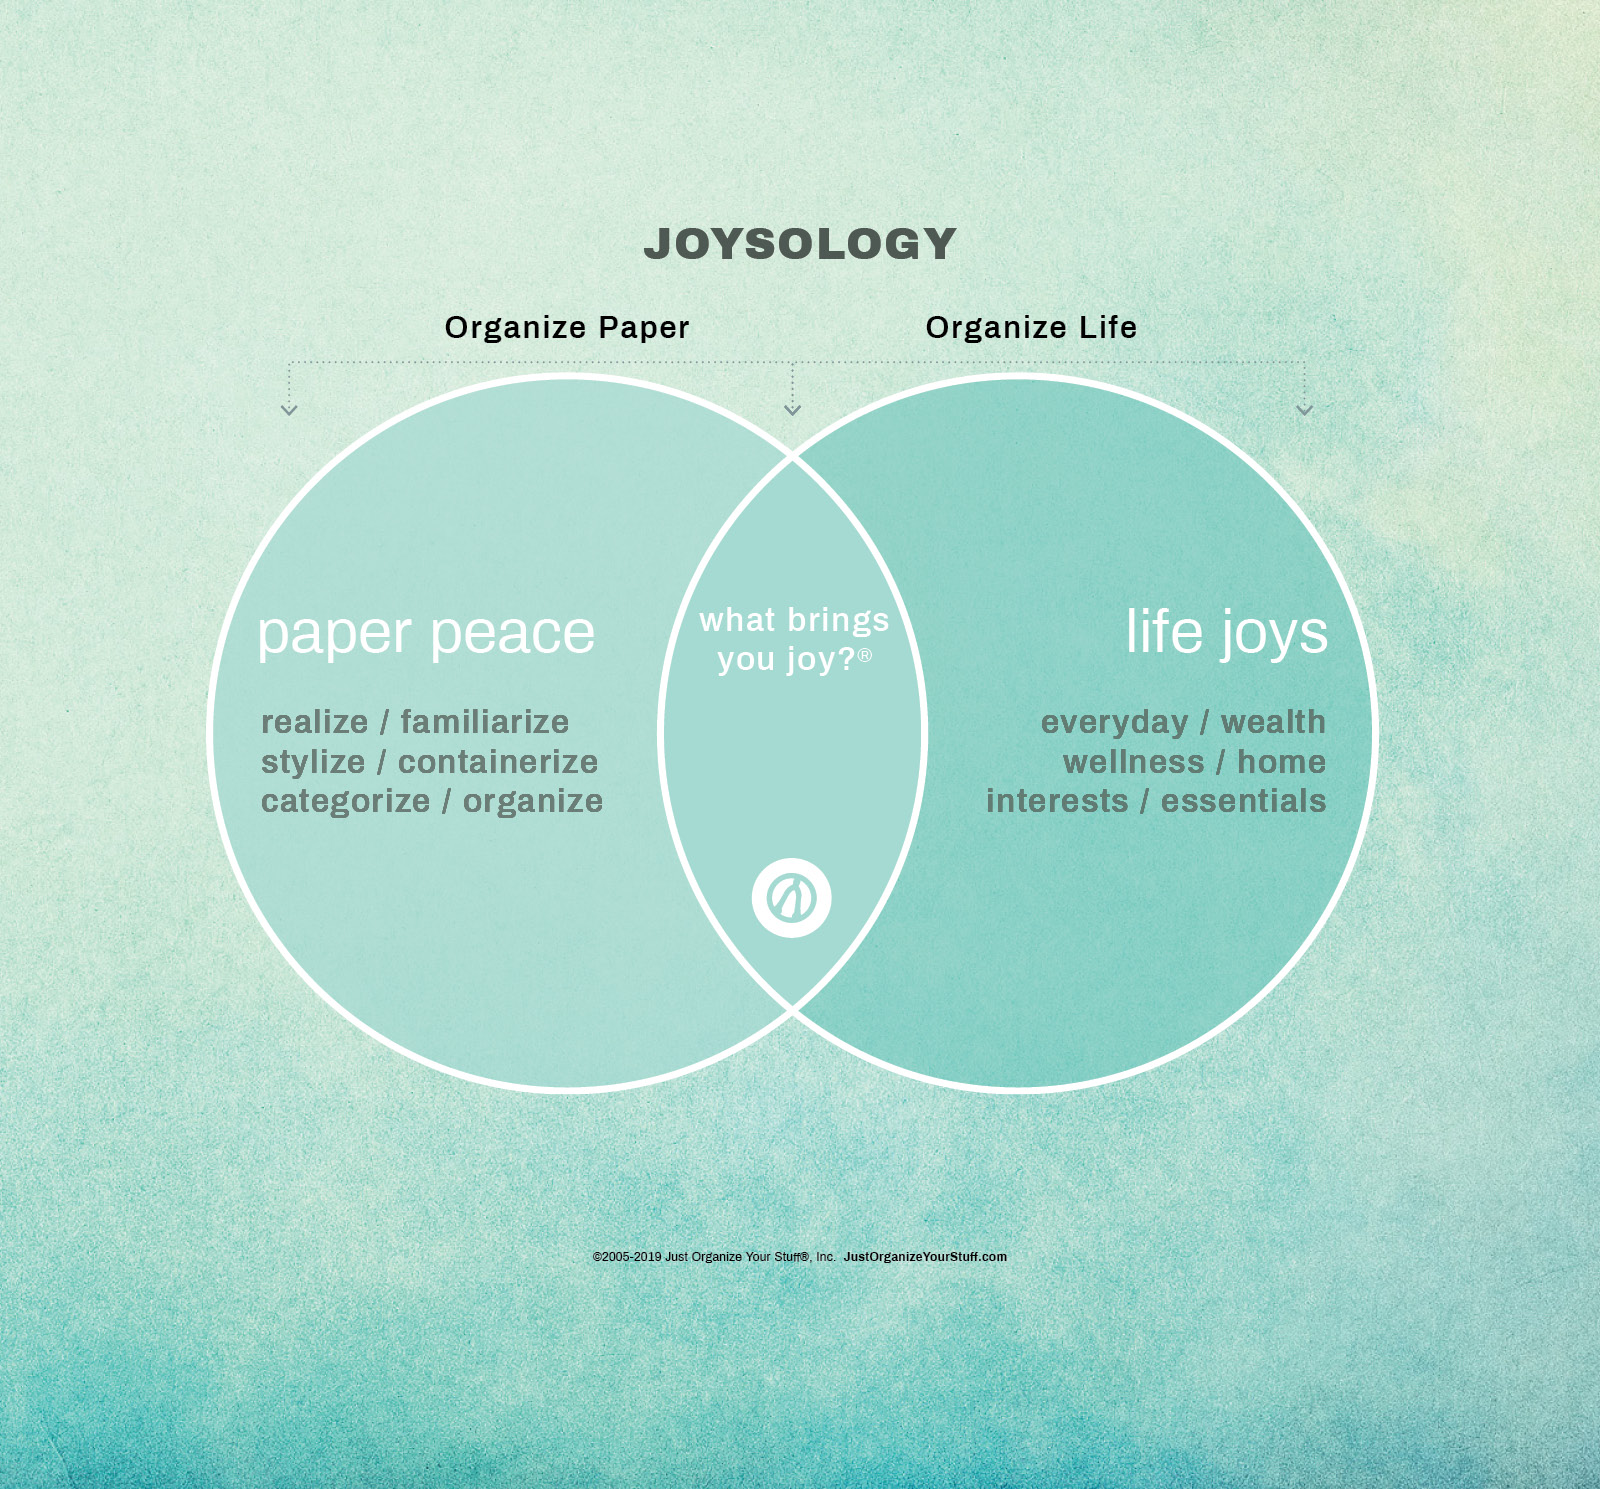 venn diagram paper peace life joys